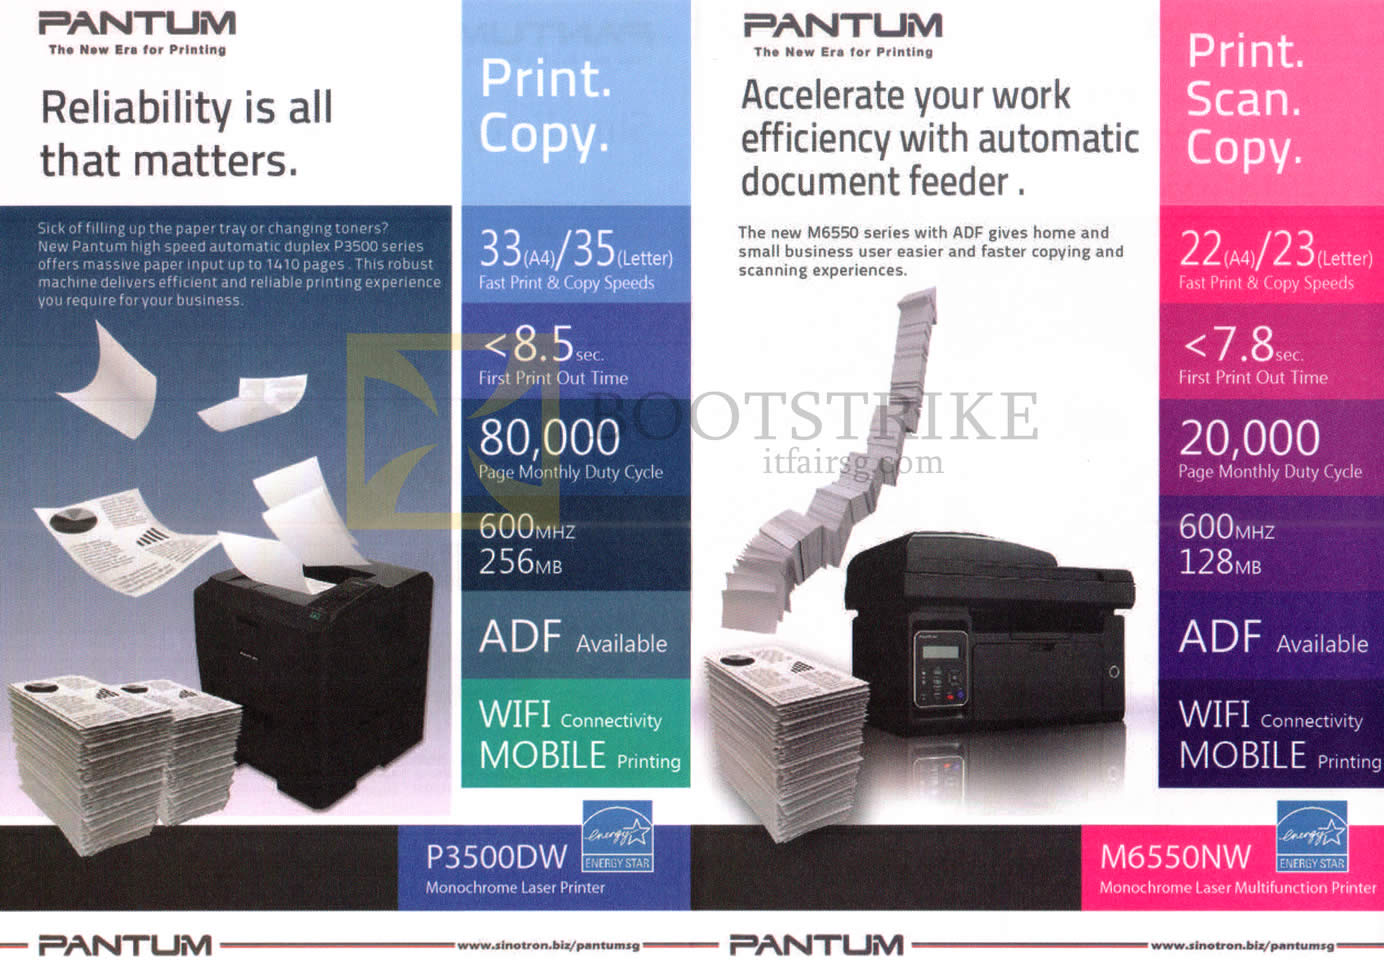 COMEX 2016 price list image brochure of Sinotron Pantum Printers P3500DW, M6550NW